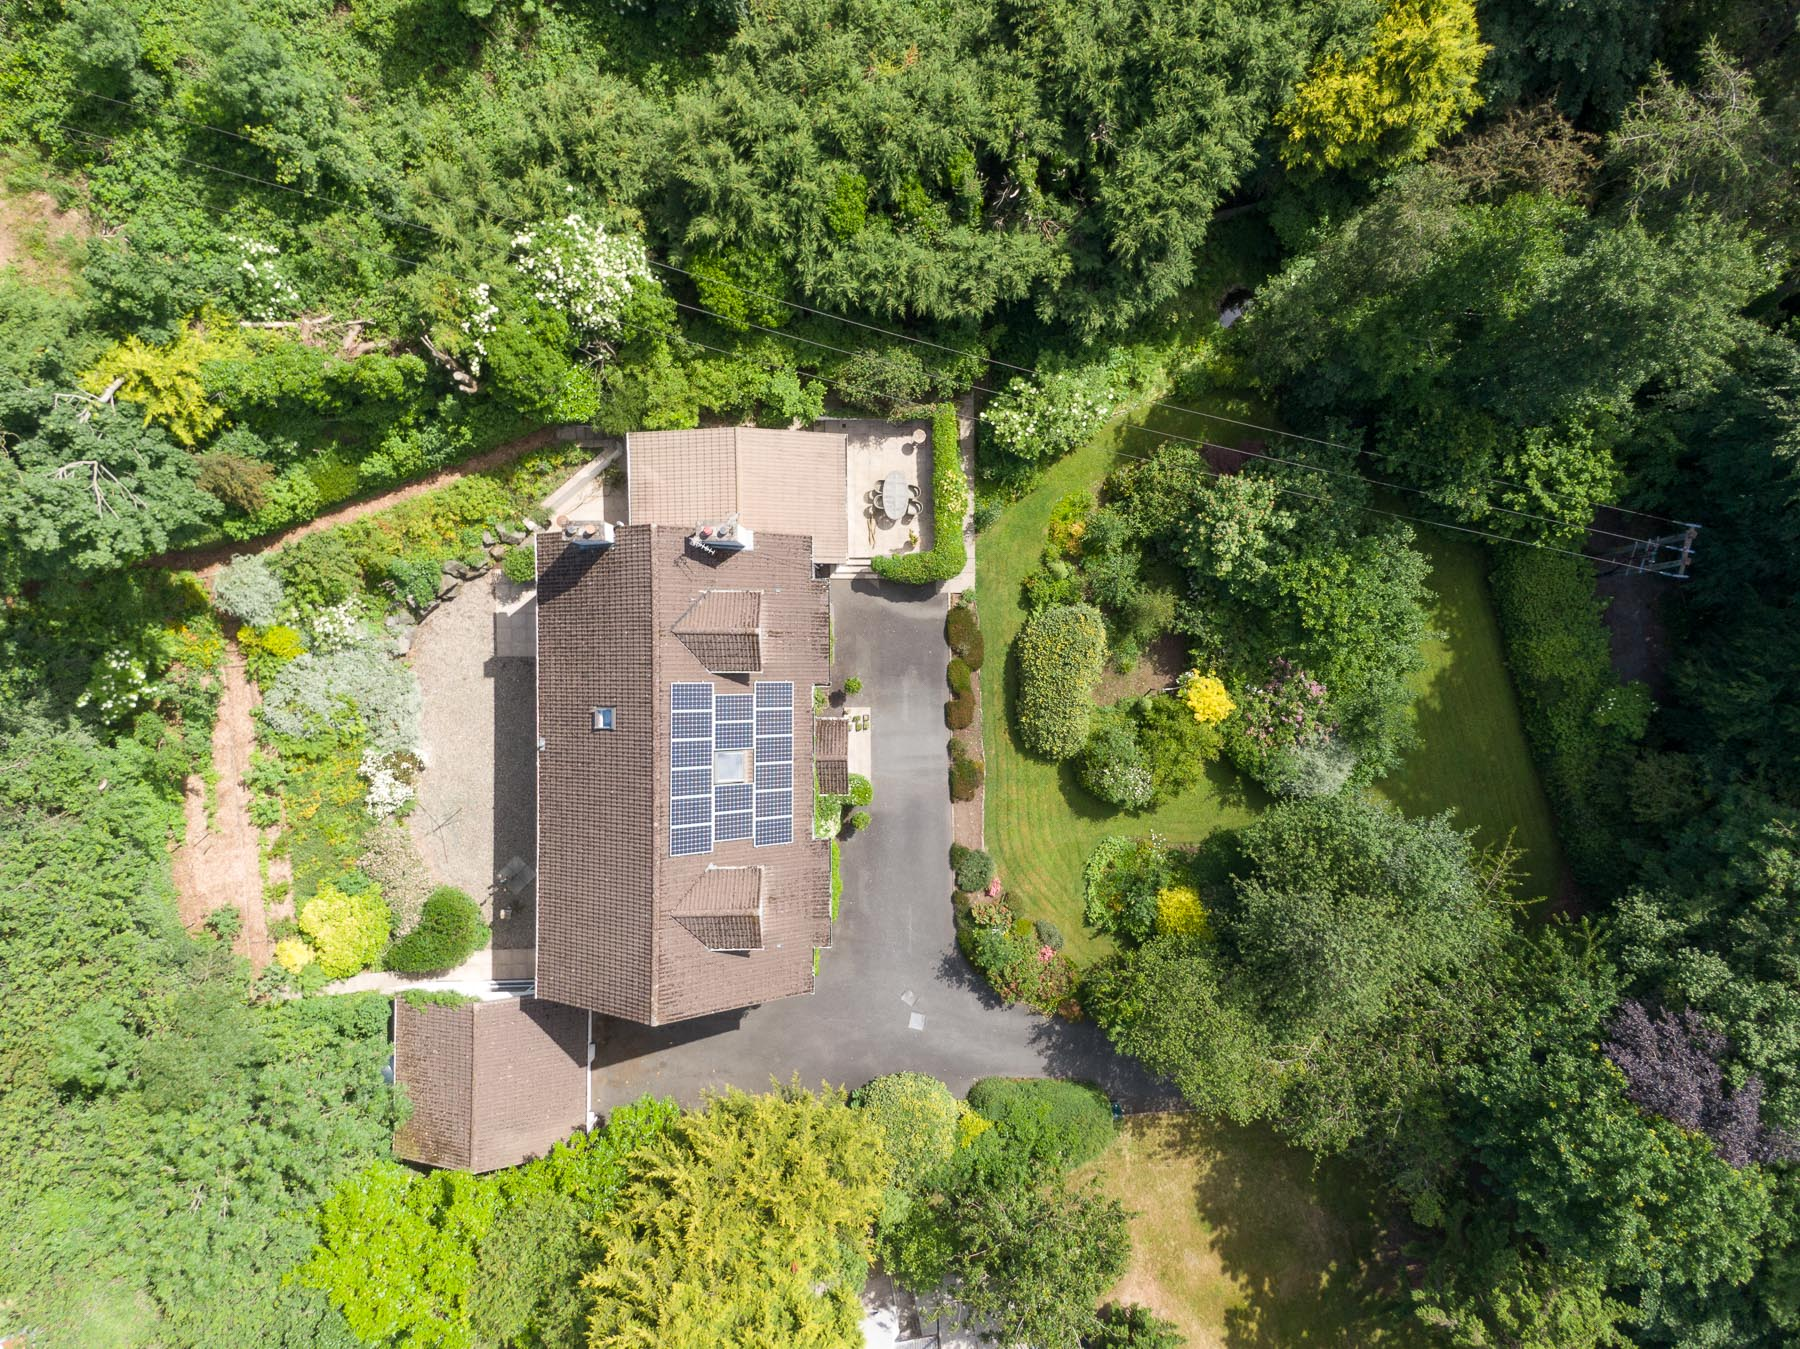 Aerial drone photography and video production services Dublin and Ireland portfolio - residential photography of Glenside, Northern Ireland. Photo 0004